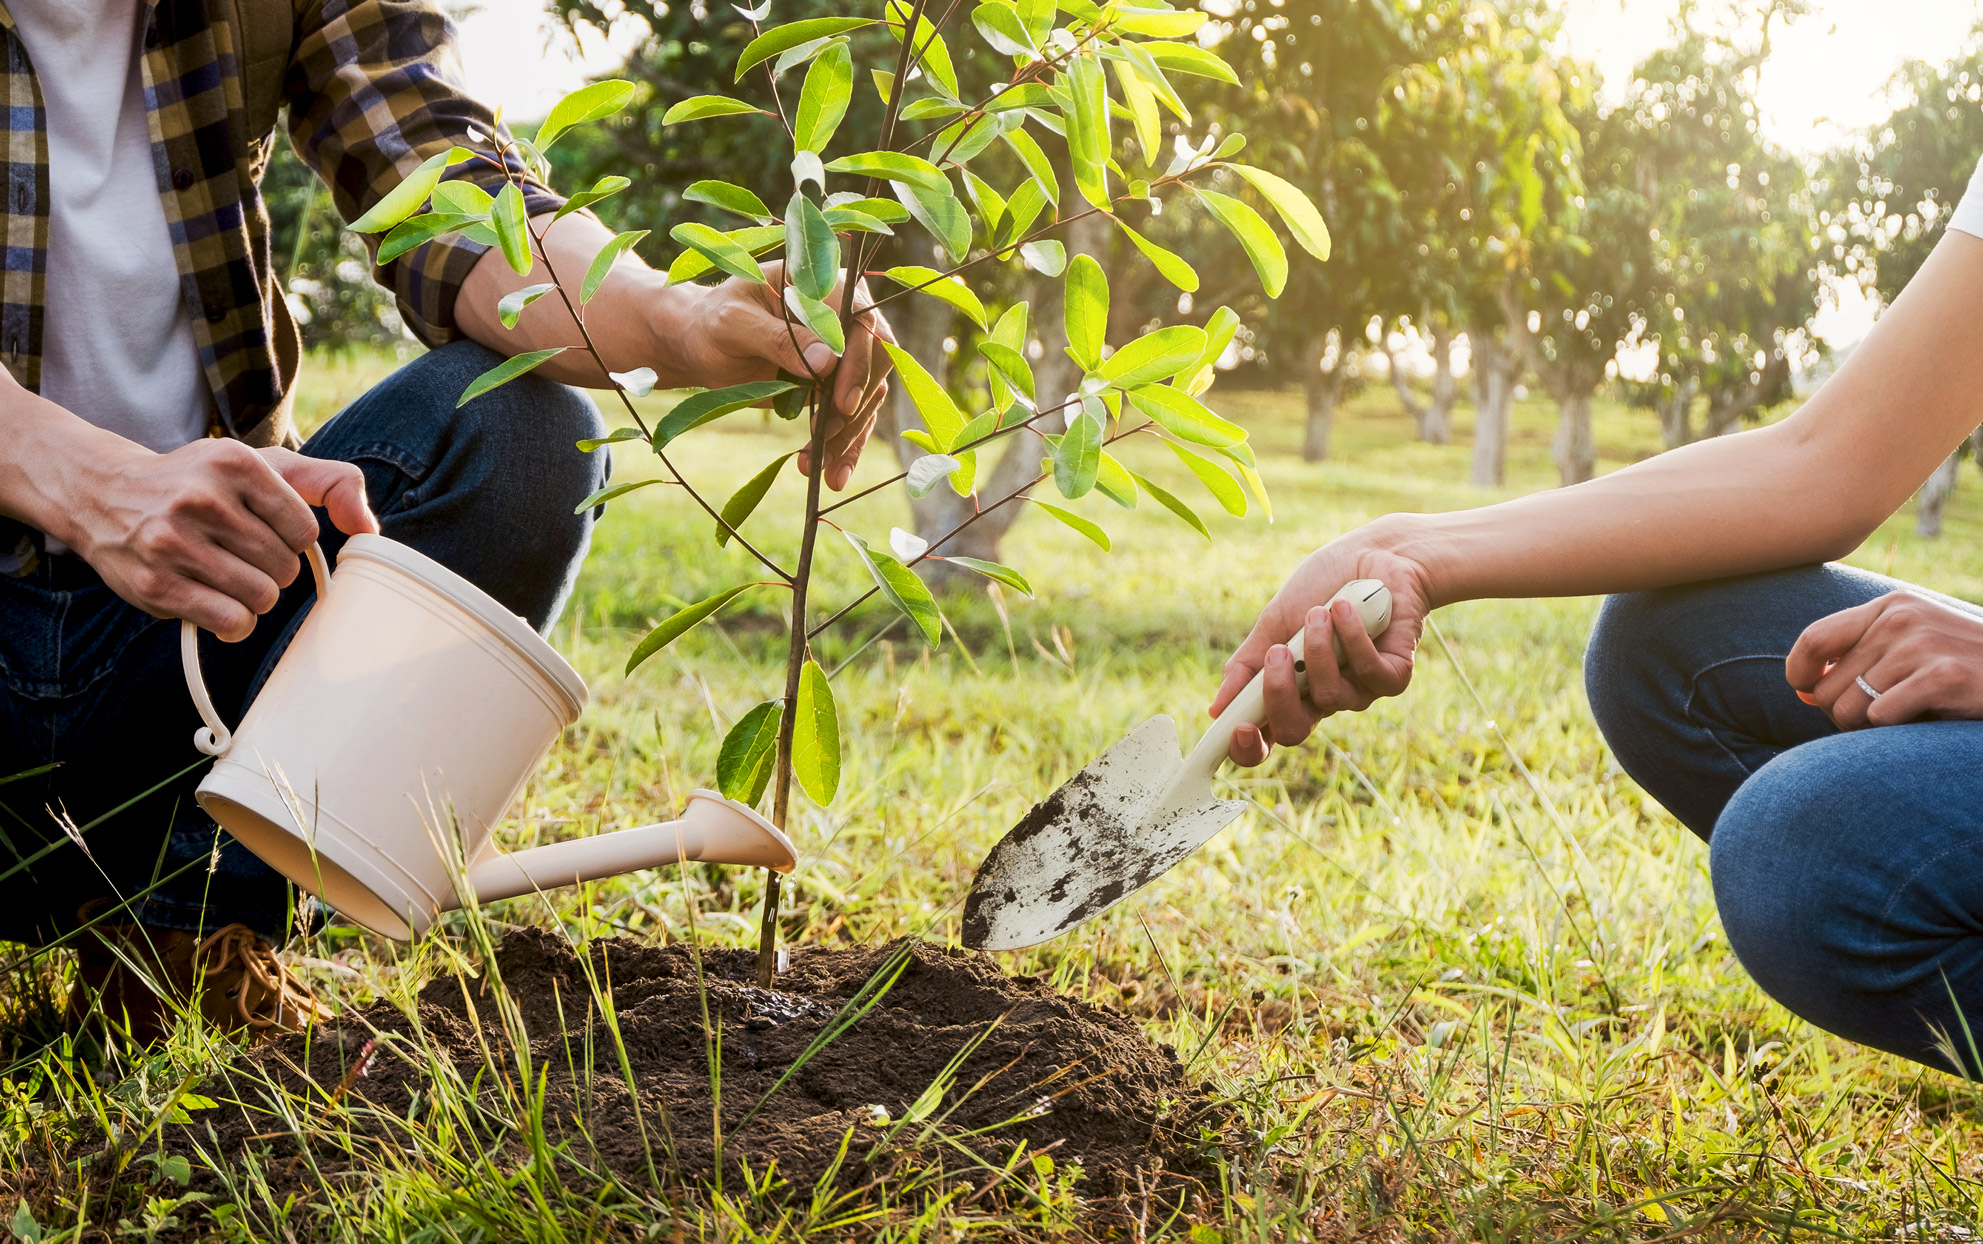 Two people planting a new tree in a yard